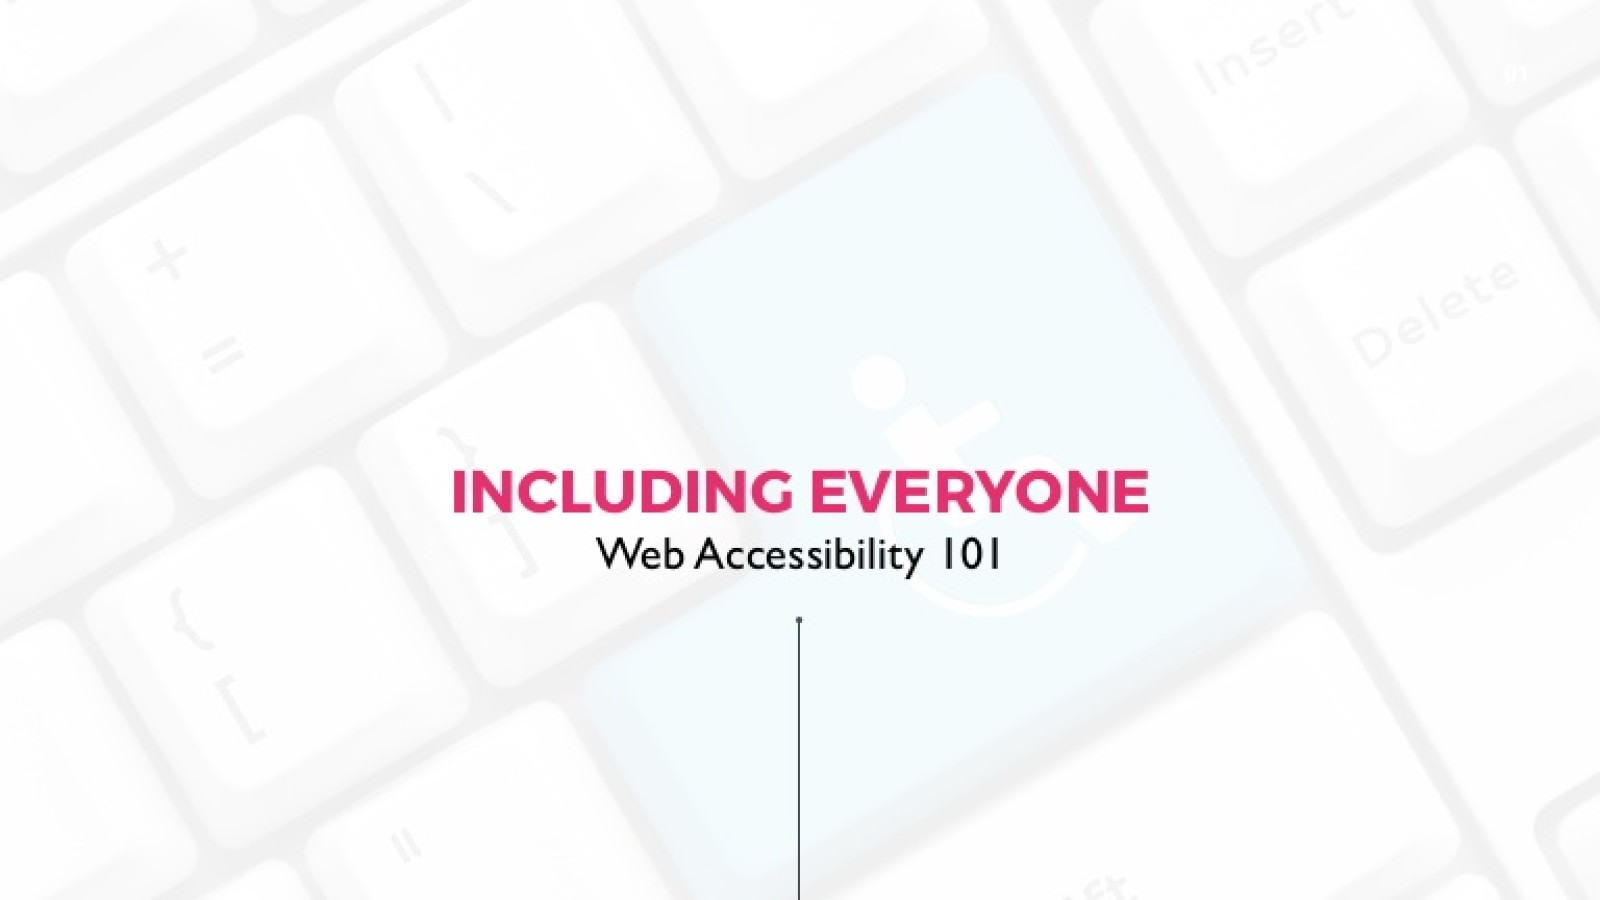 Web Accessibility 101: Principles, Concepts, and Financial Viability